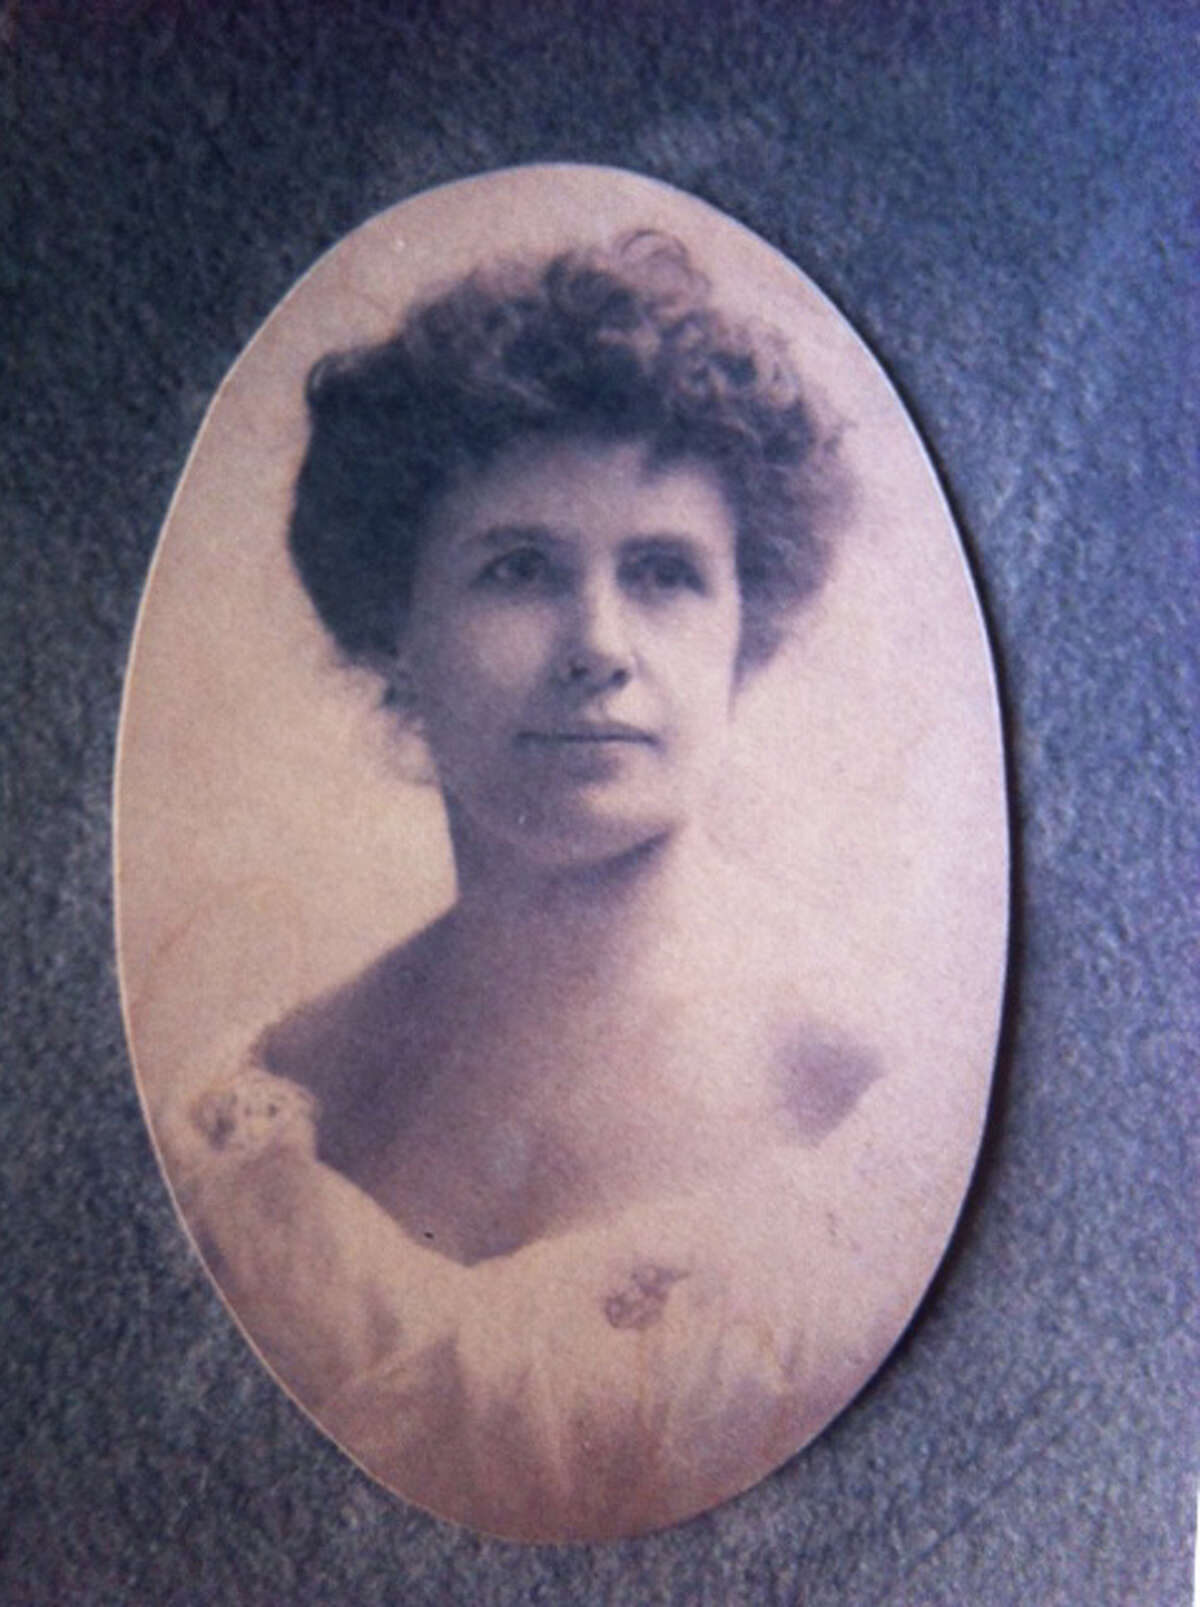 Helen Churchill Candee seen in an undated family photo prior to 1912.